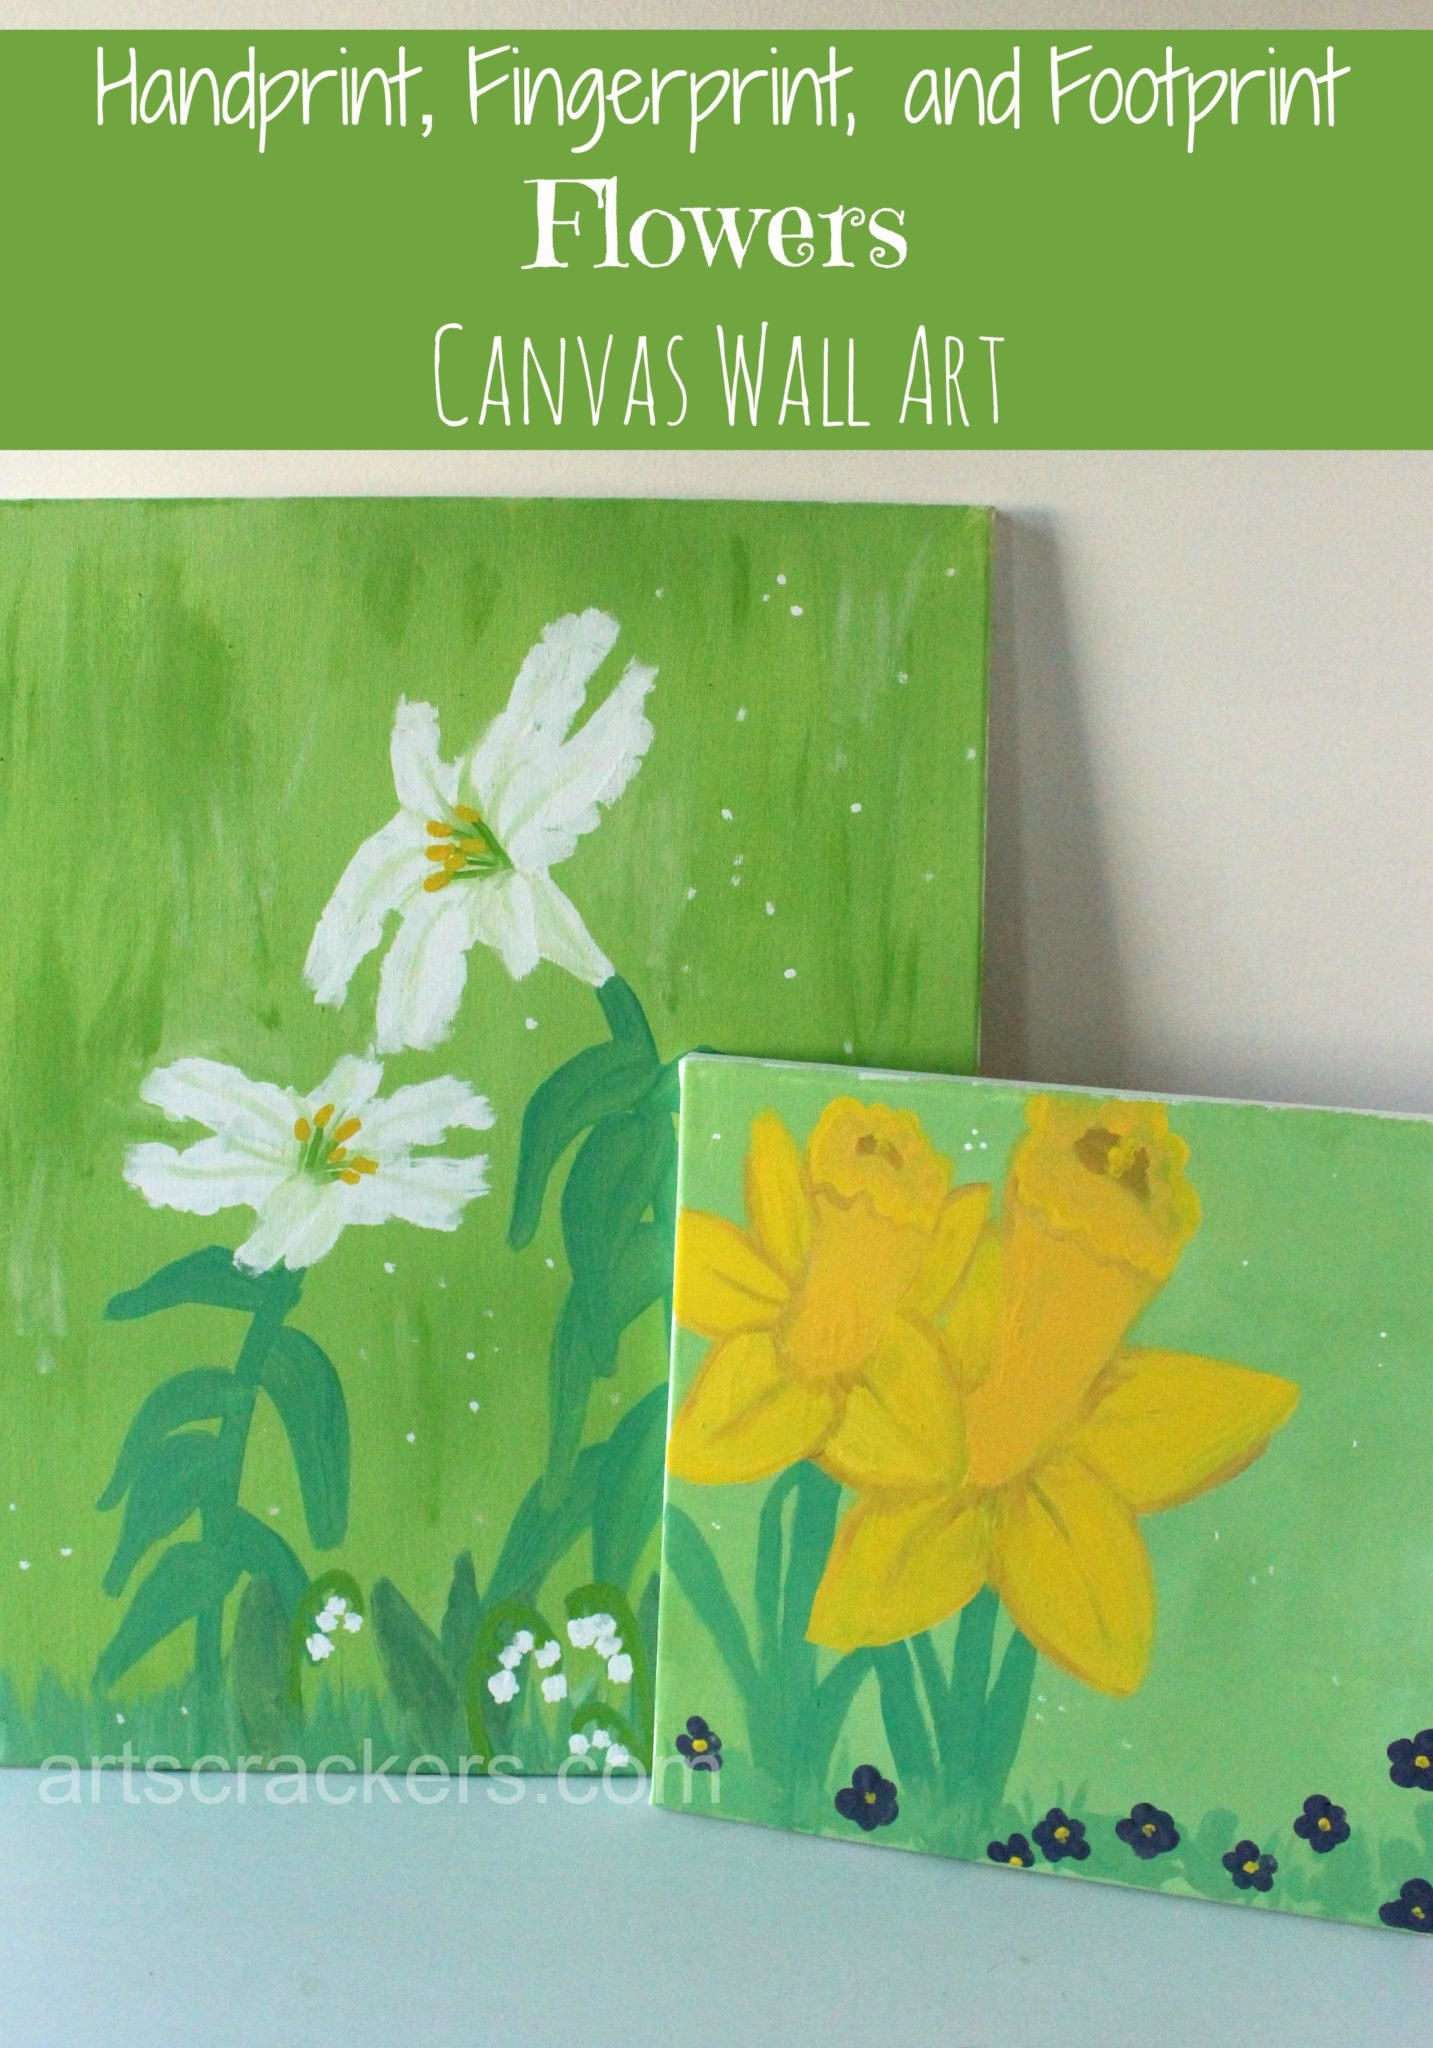 Handprint Fingerprint and Footprint Flowers Canvas Wall Art. Click the picture to view the tutorial.